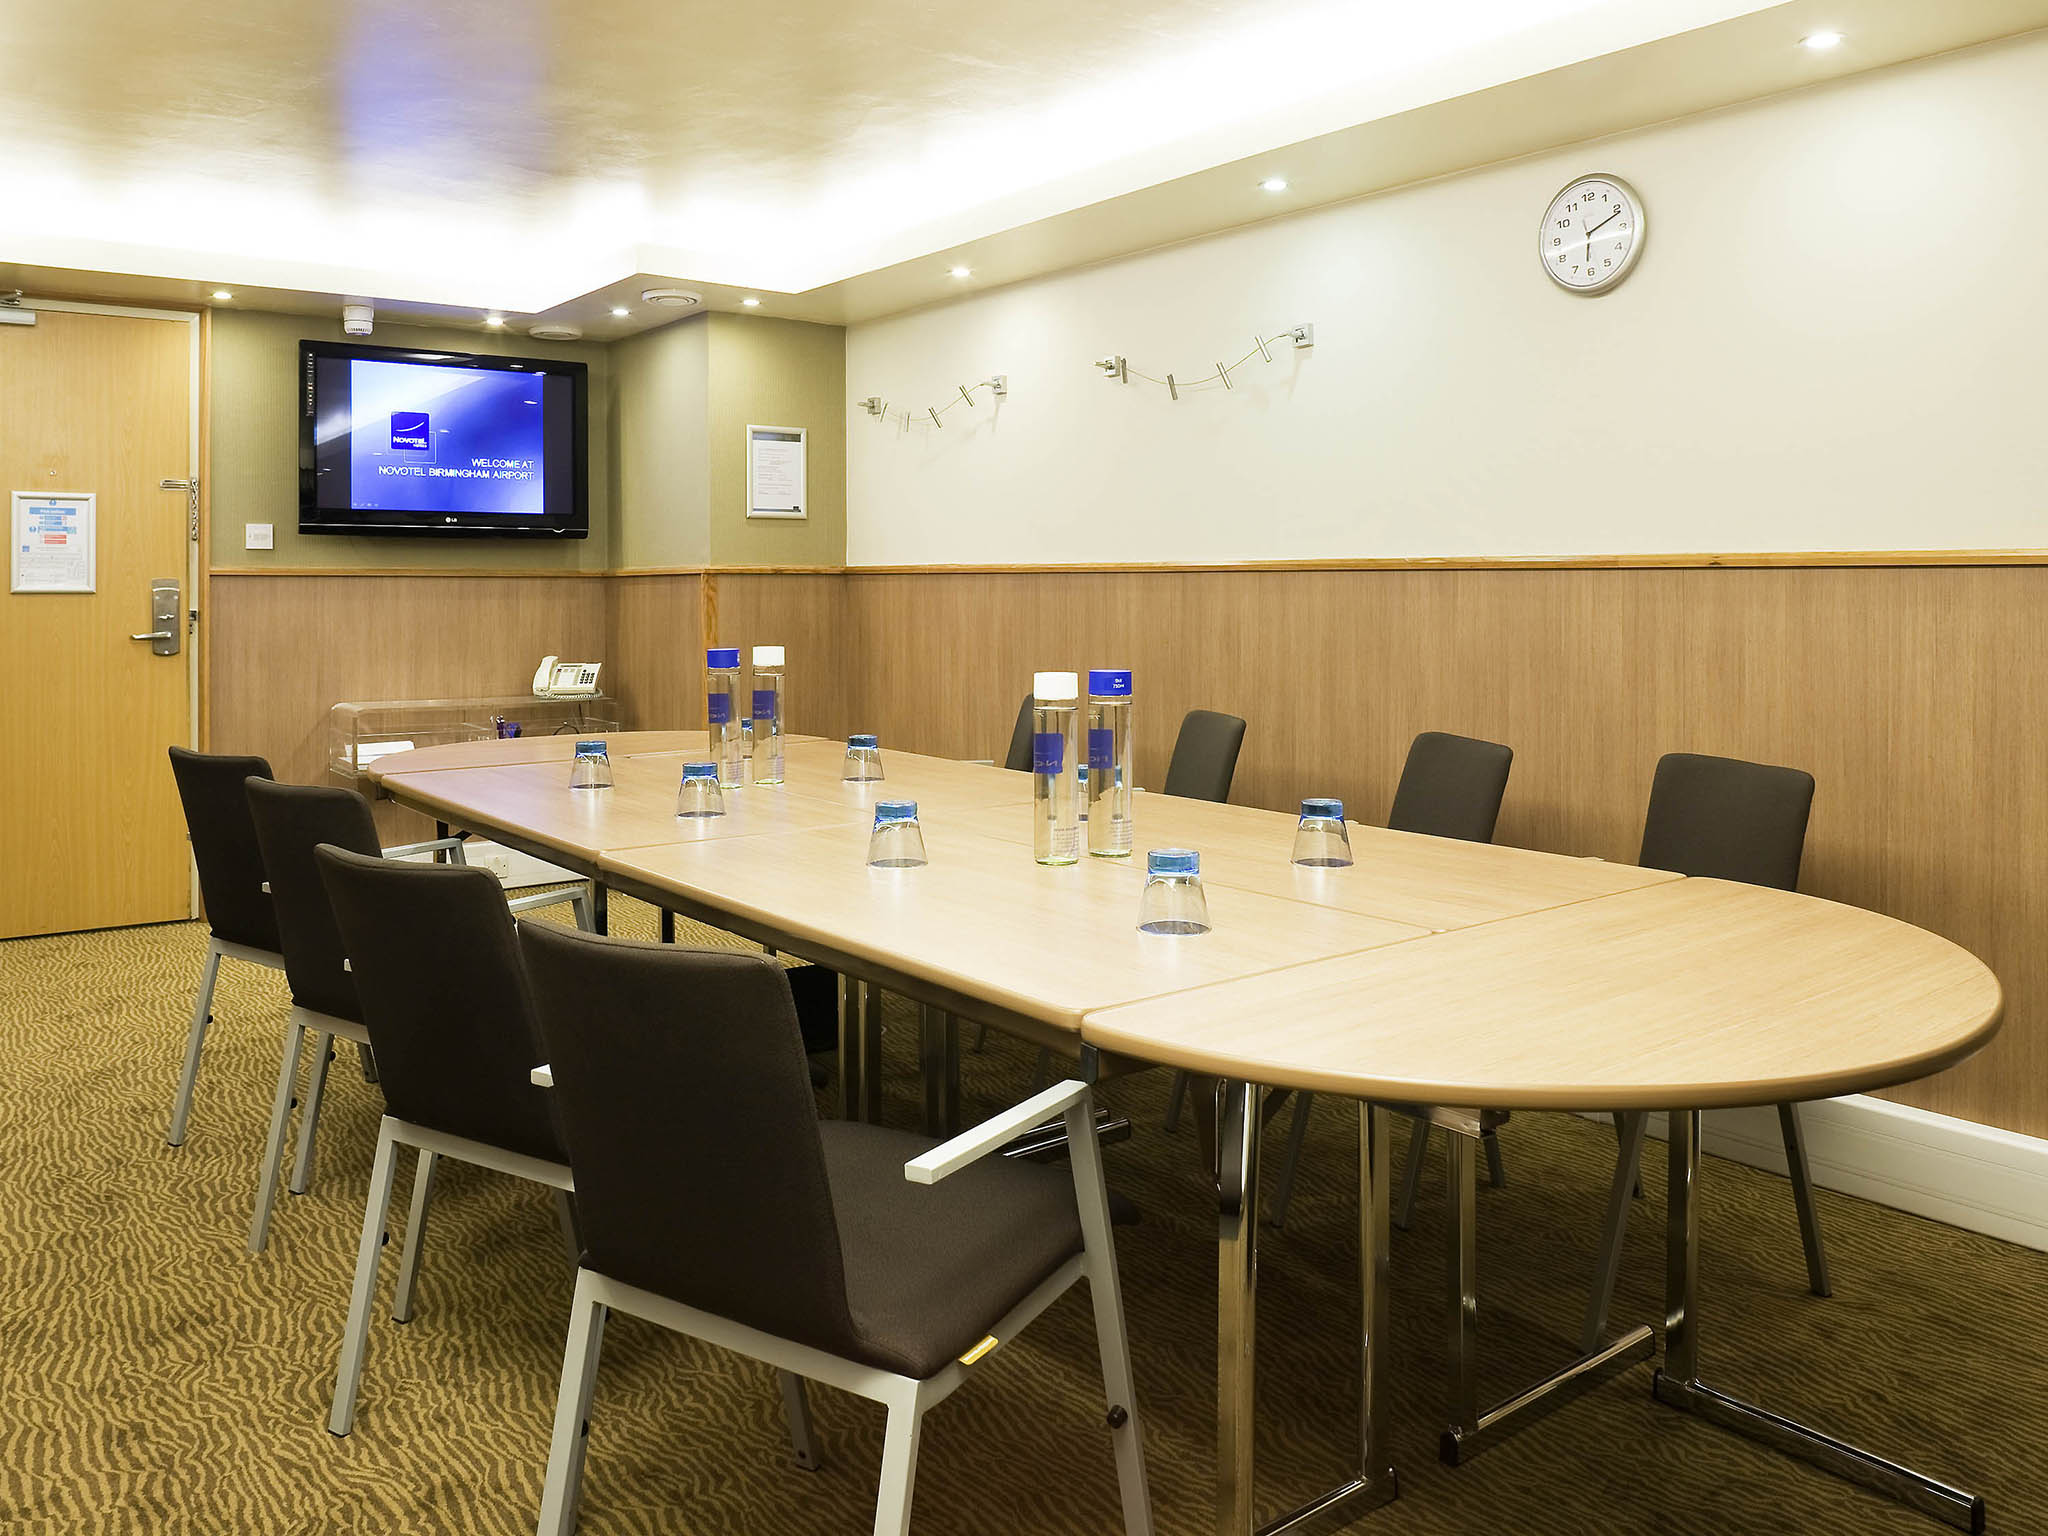 Novotel birmingham airport relaxing hotel inbirmingham meetings and events novotel birmingham airport kristyandbryce Choice Image